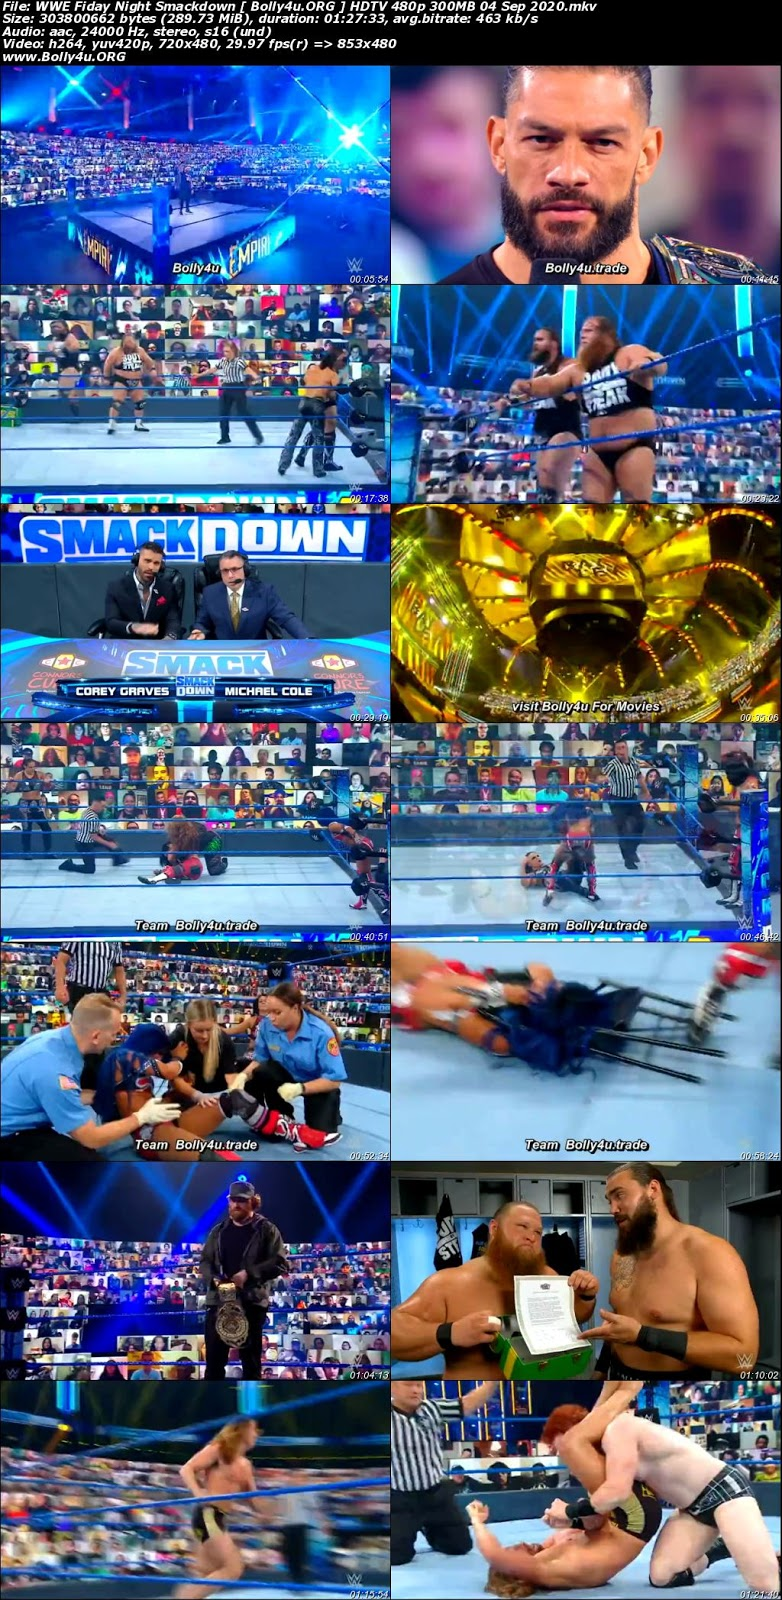 WWE Fiday Night Smackdown HDTV 480p 300MB 04 Sep 2020 Download